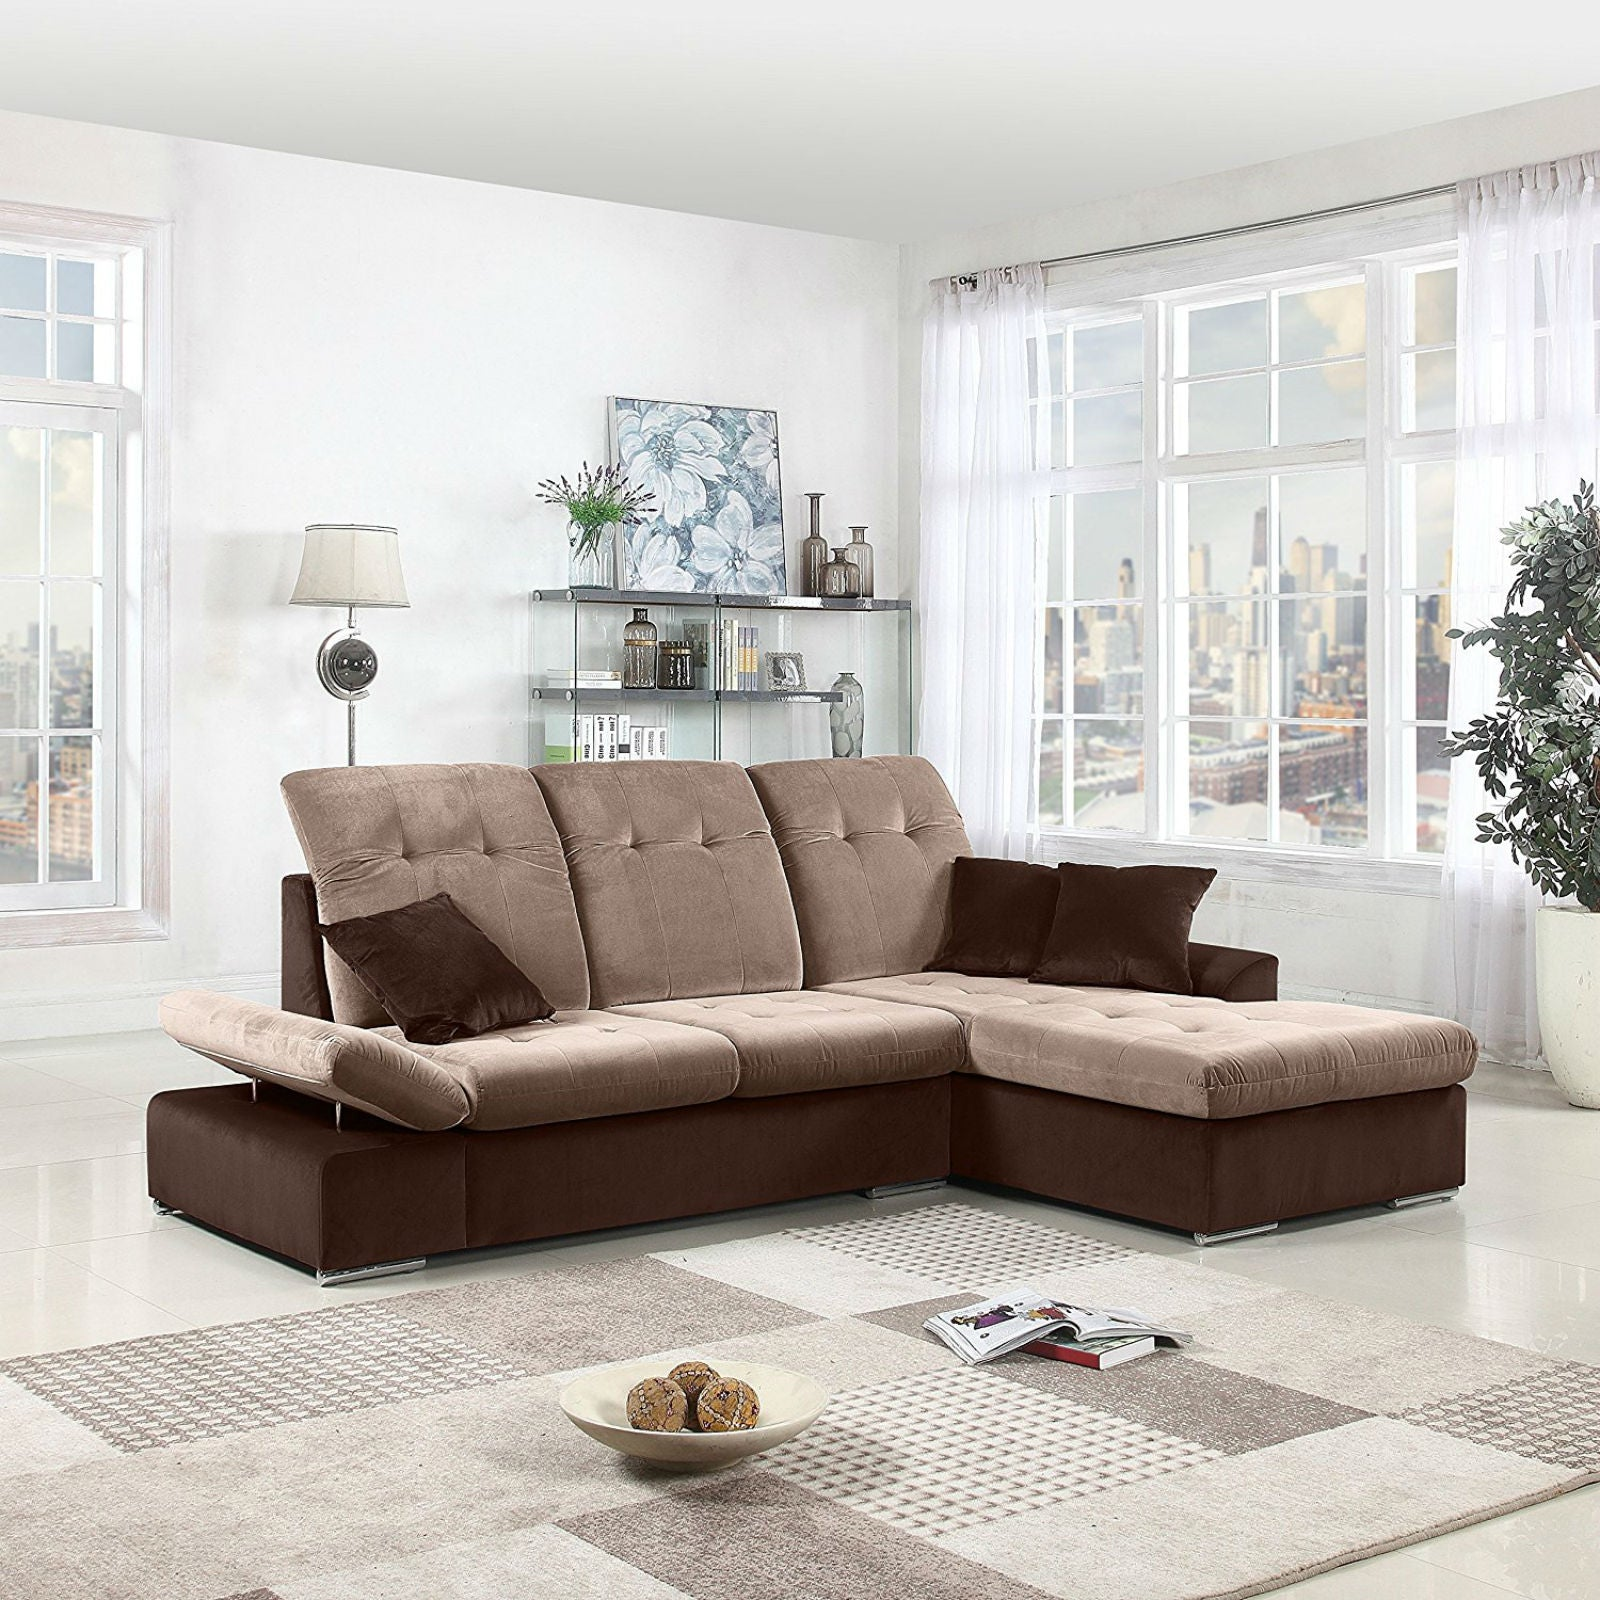 Concorde Microfiber Sectional Sofa with Chaise Lifestyle ... : suede sectional sofas - Sectionals, Sofas & Couches